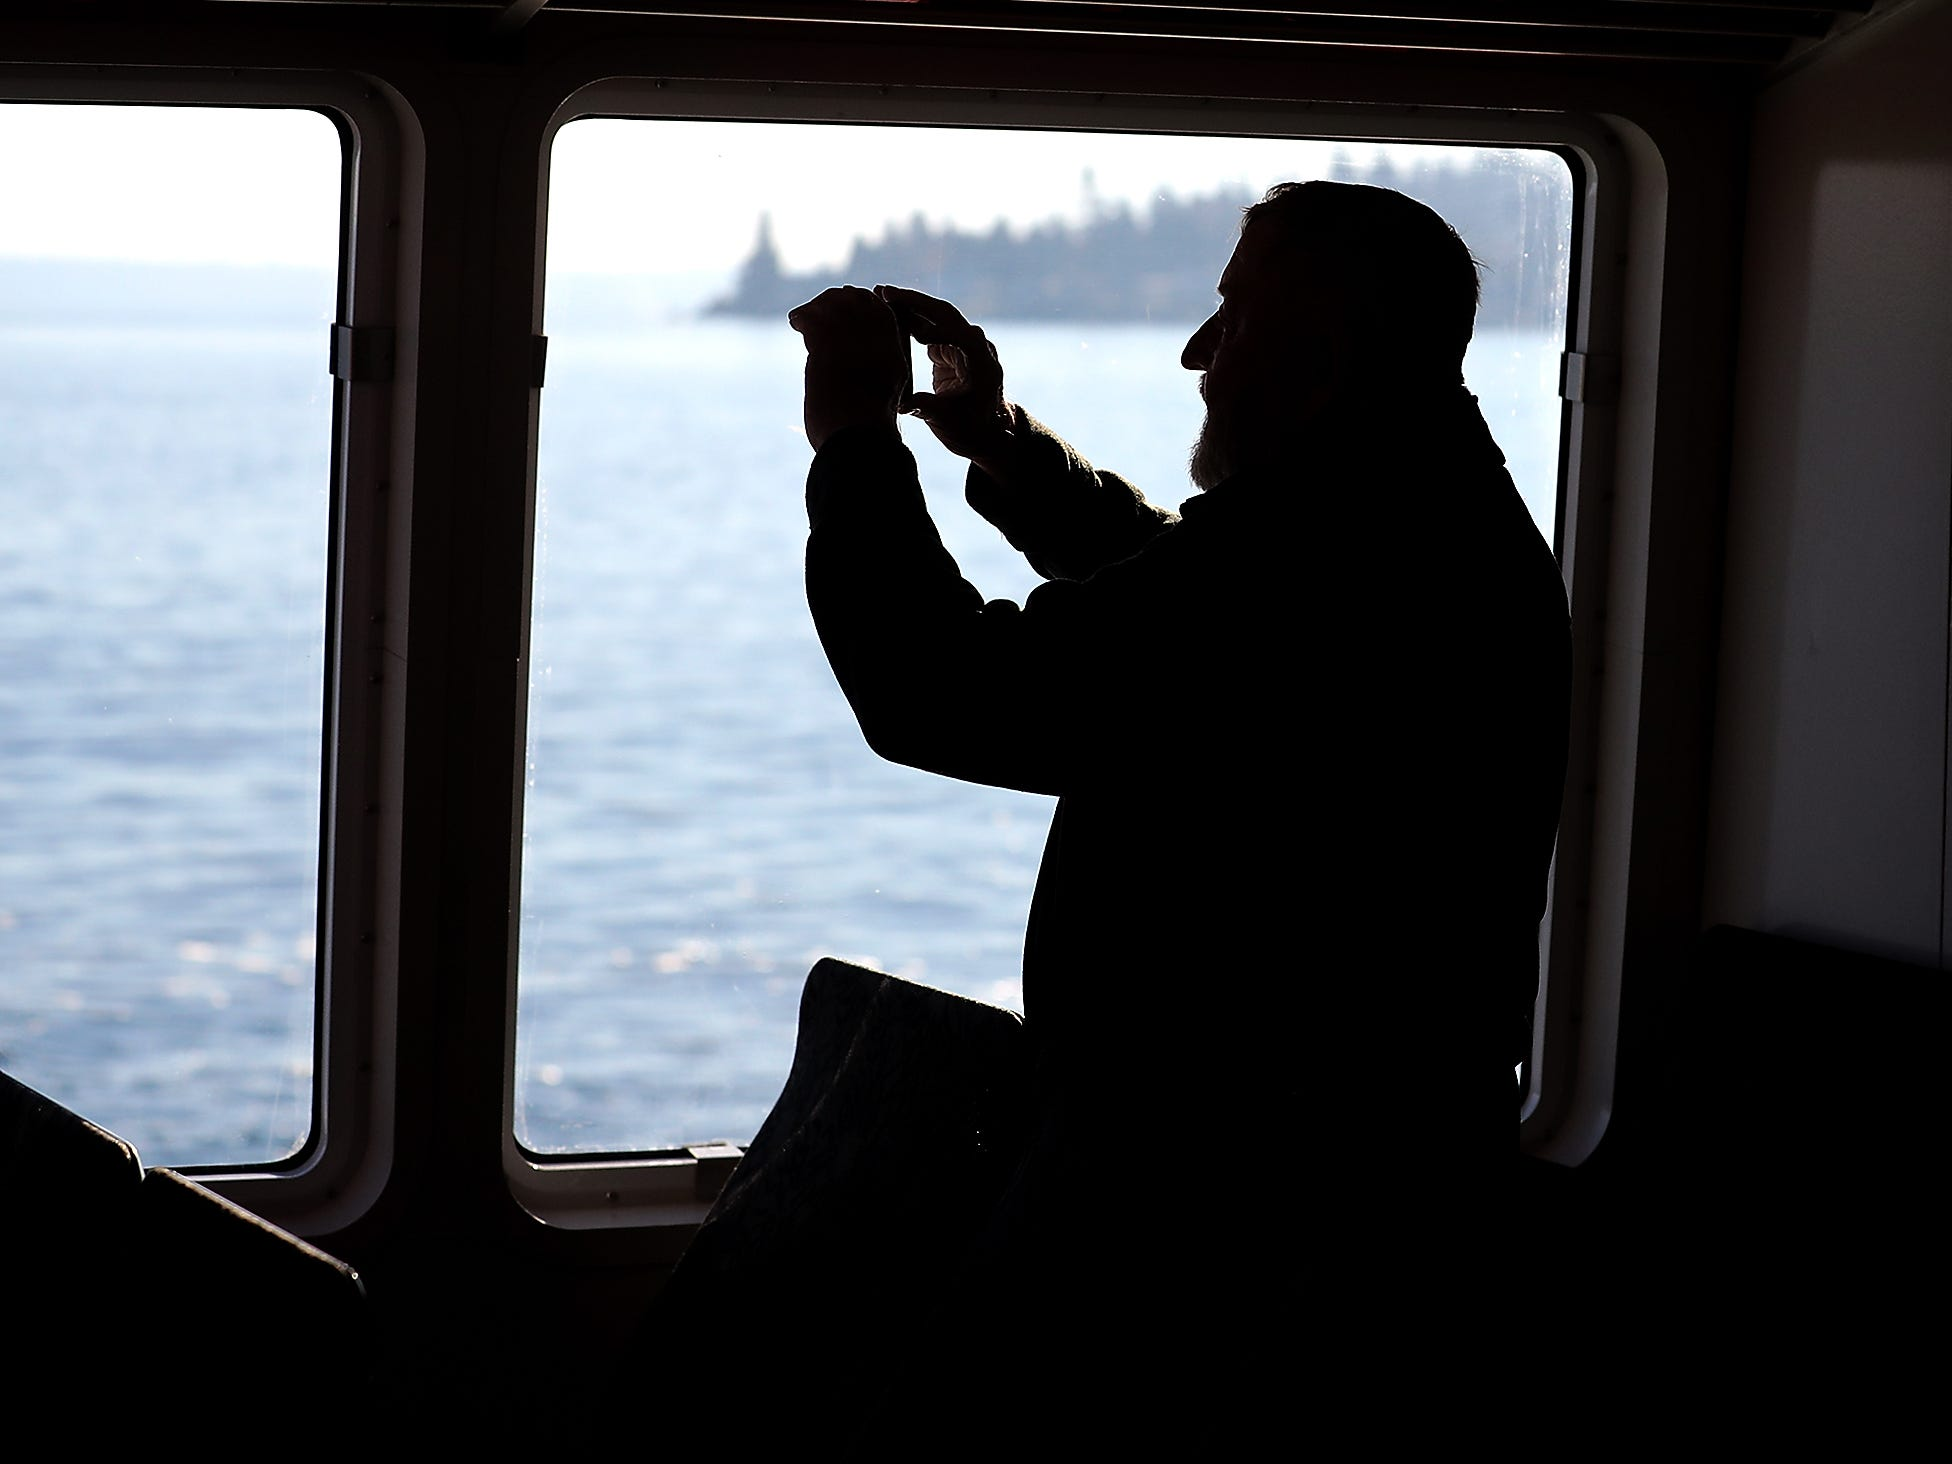 Peter Murphy, of Kingston, snaps photos out the window of the M/V Finest during the Grand Opening at the Port of Kingston for Kitsap Transit's new fast-ferry service between Kingston and Seattle on Monday, November 19, 2018.